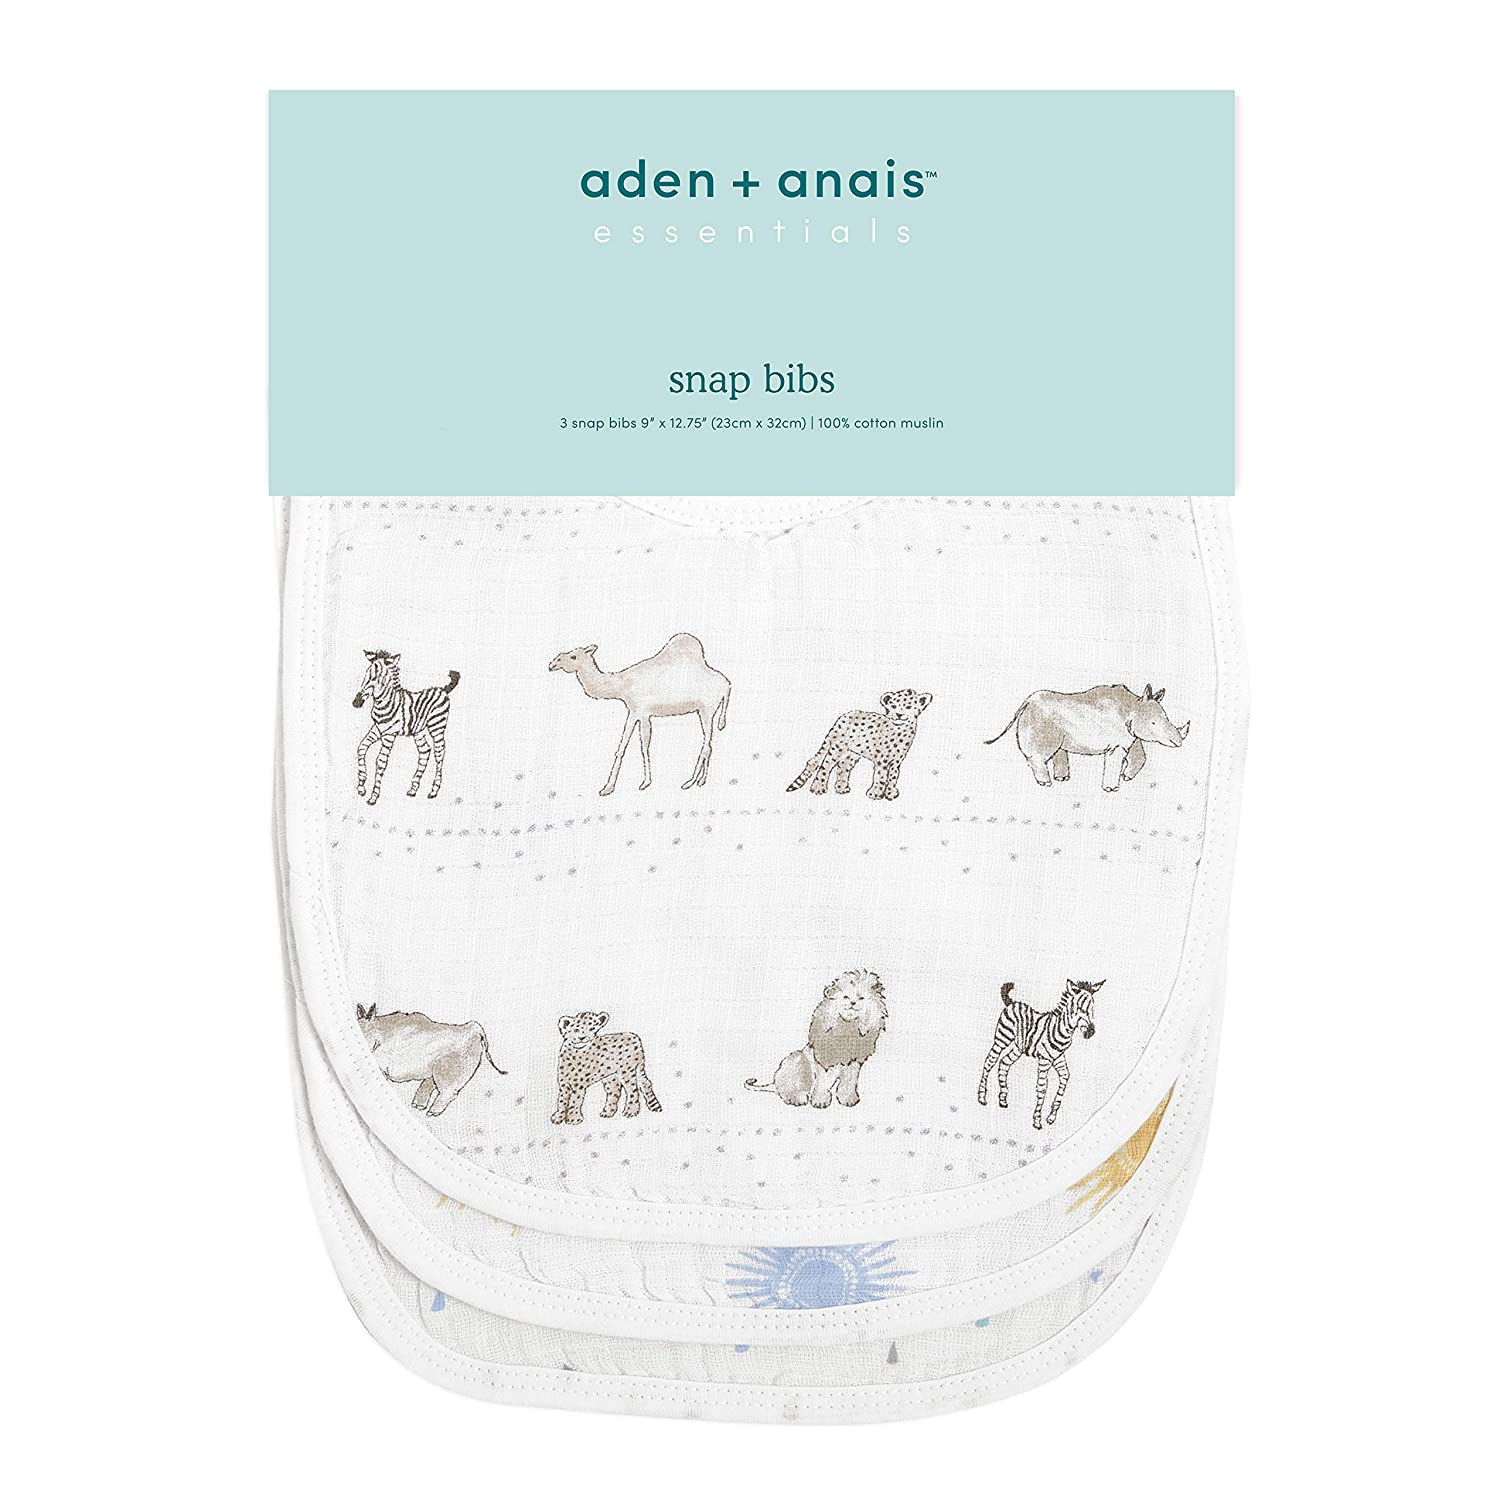 anais Essentials Snap Baby Bib Sunshine aden 3 Pack 100/% Cotton Muslin Newborns and Toddlers Super Soft /& Absorbent for Infants 3 Layer Burp Cloth Adjustable with Snaps